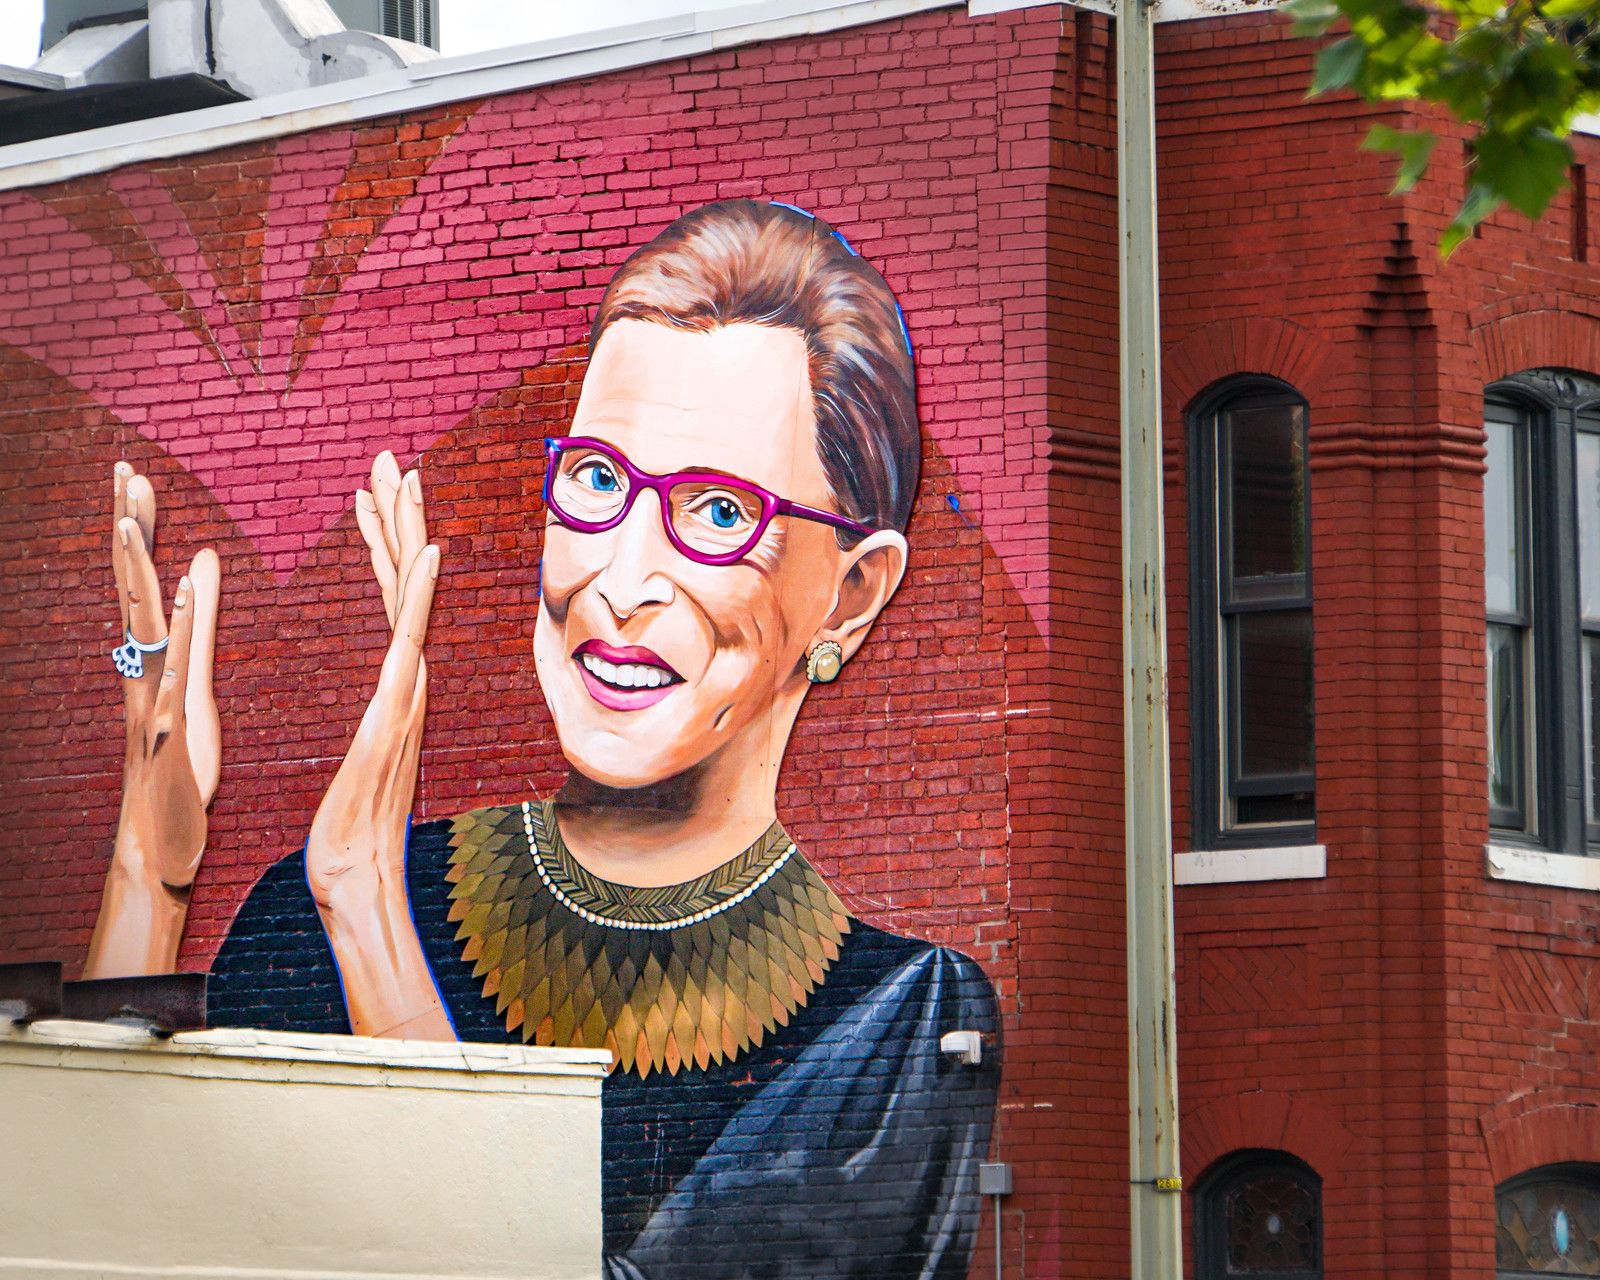 2019.09.14 Ruth Bader Ginsburg Mural, Washington, DC USA 257 33040